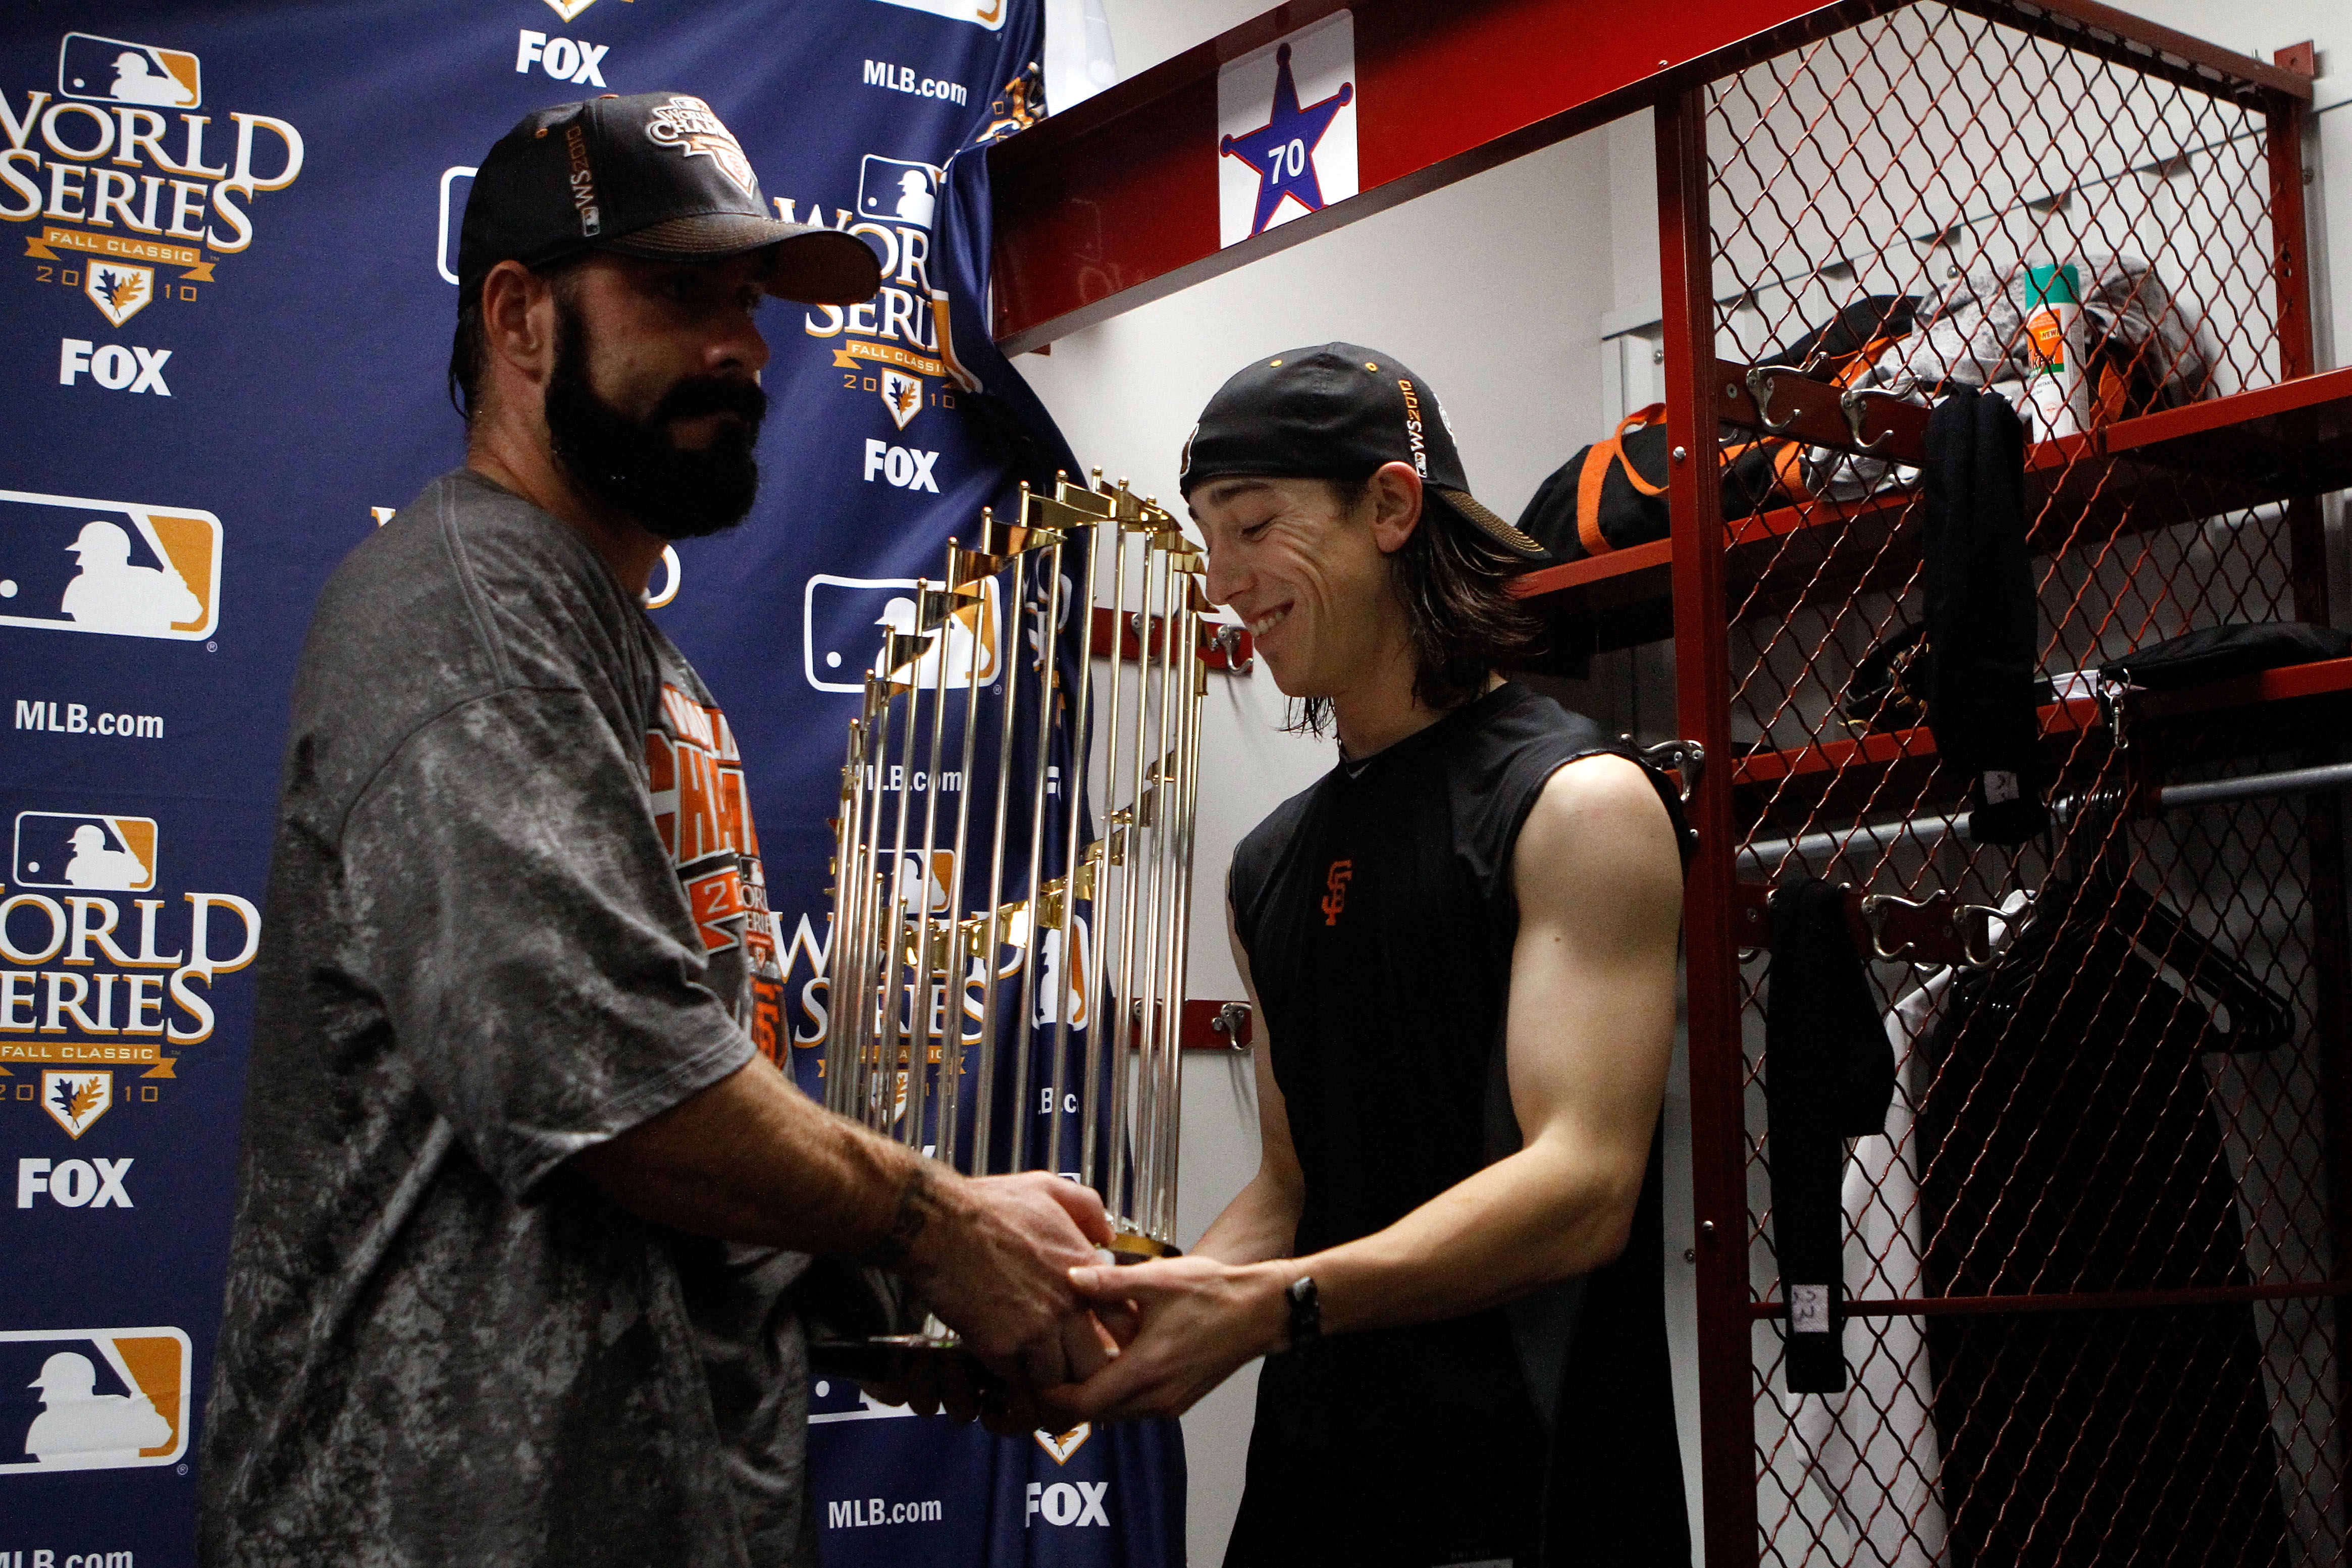 ARLINGTON, TX - NOVEMBER 01:  (L-R) Brian Wilson #28 and Tim Lincecum #55 of the San Francisco Giants celebrate with the World Series trophy in the locker room after the Giants won 3-1 against the Texas Rangers in Game Five of the 2010 MLB World Series at